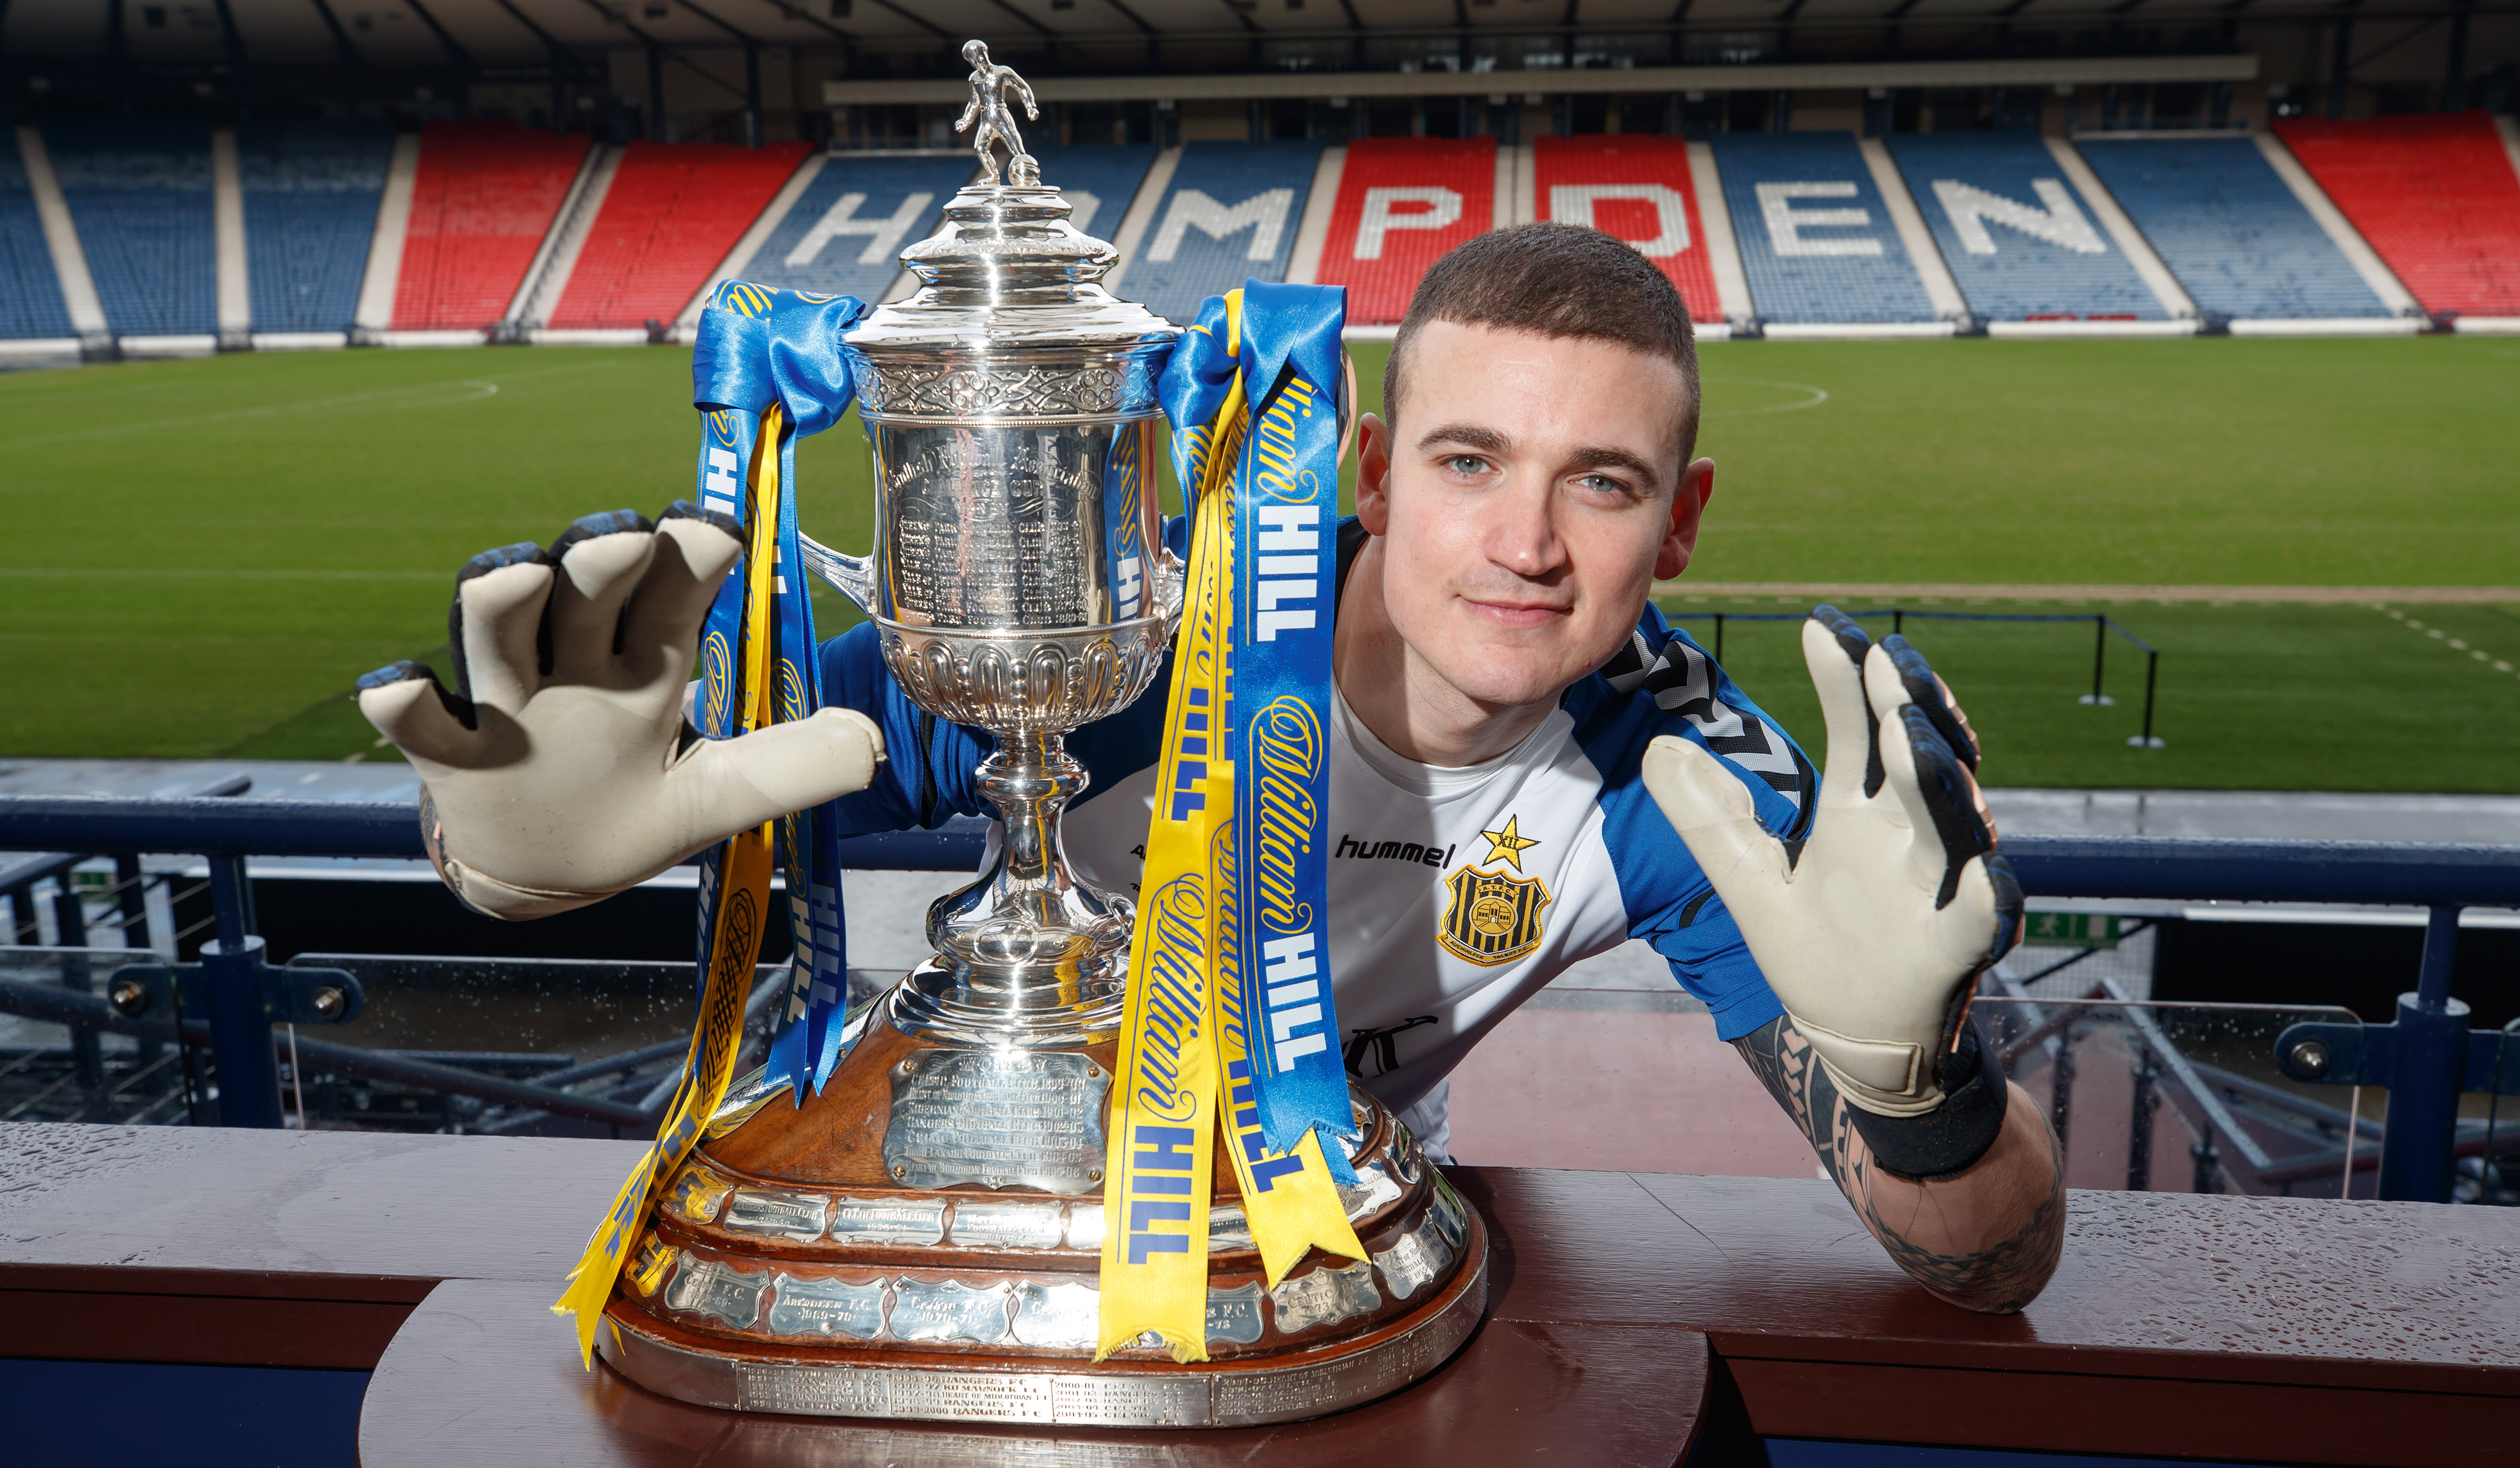 Andy Leishman would love to be this close to the Scottish Cup come Final day on May 25, but knows that is a very long shot (Steve Welsh)